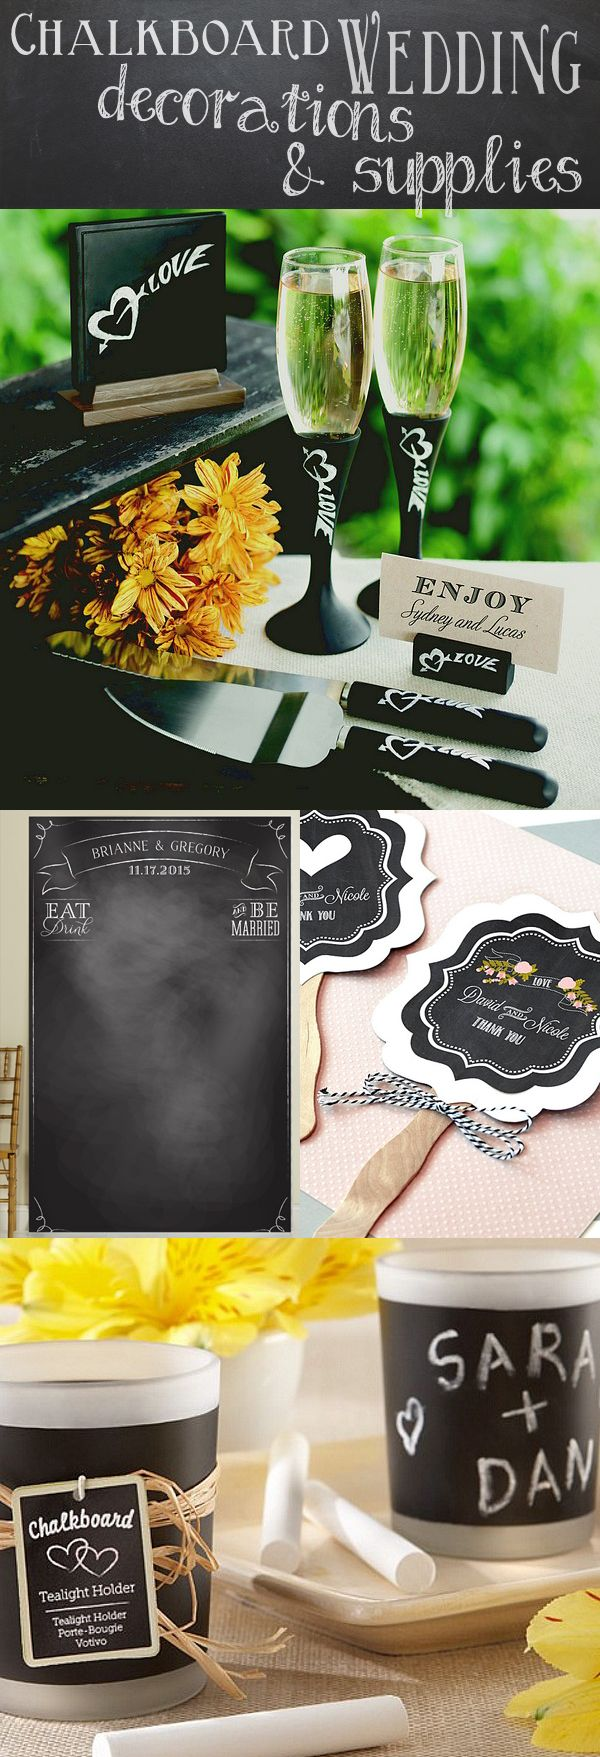 From sweet chalkboard candle favors to photo booth backdrops, hand fans, and ceremony accessories, find the perfect decorations for your chalkboard wedding here.  Use chalkboard decor to compliment your rustic or shabby-chic wedding, or deck out your entire ceremony and reception with chalkboard inspired items for a fun chalkboard wedding!